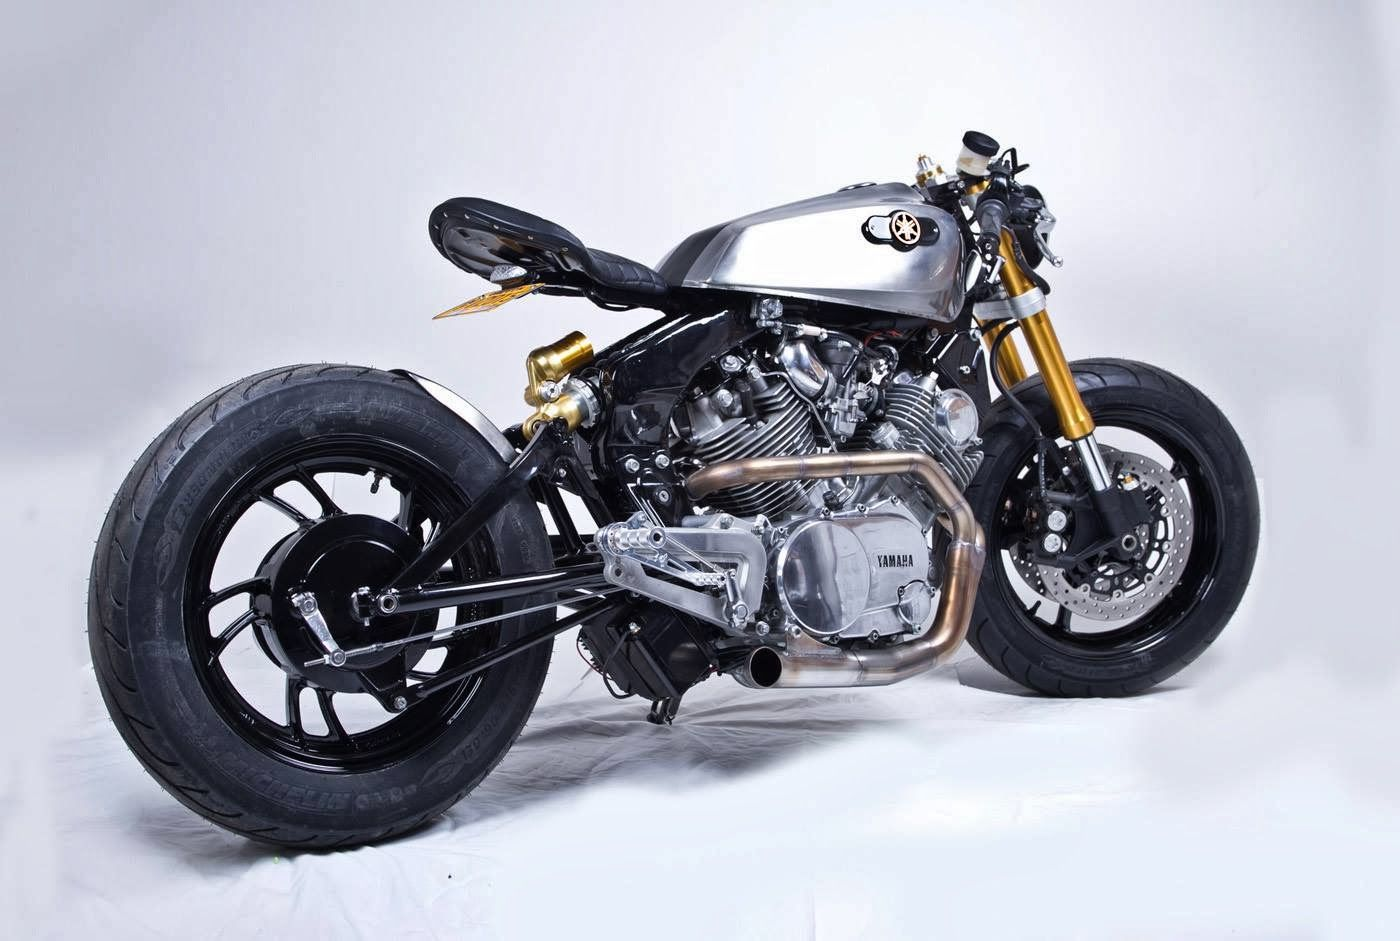 Yzf R6 Cafe Racer Newmotorwall Org